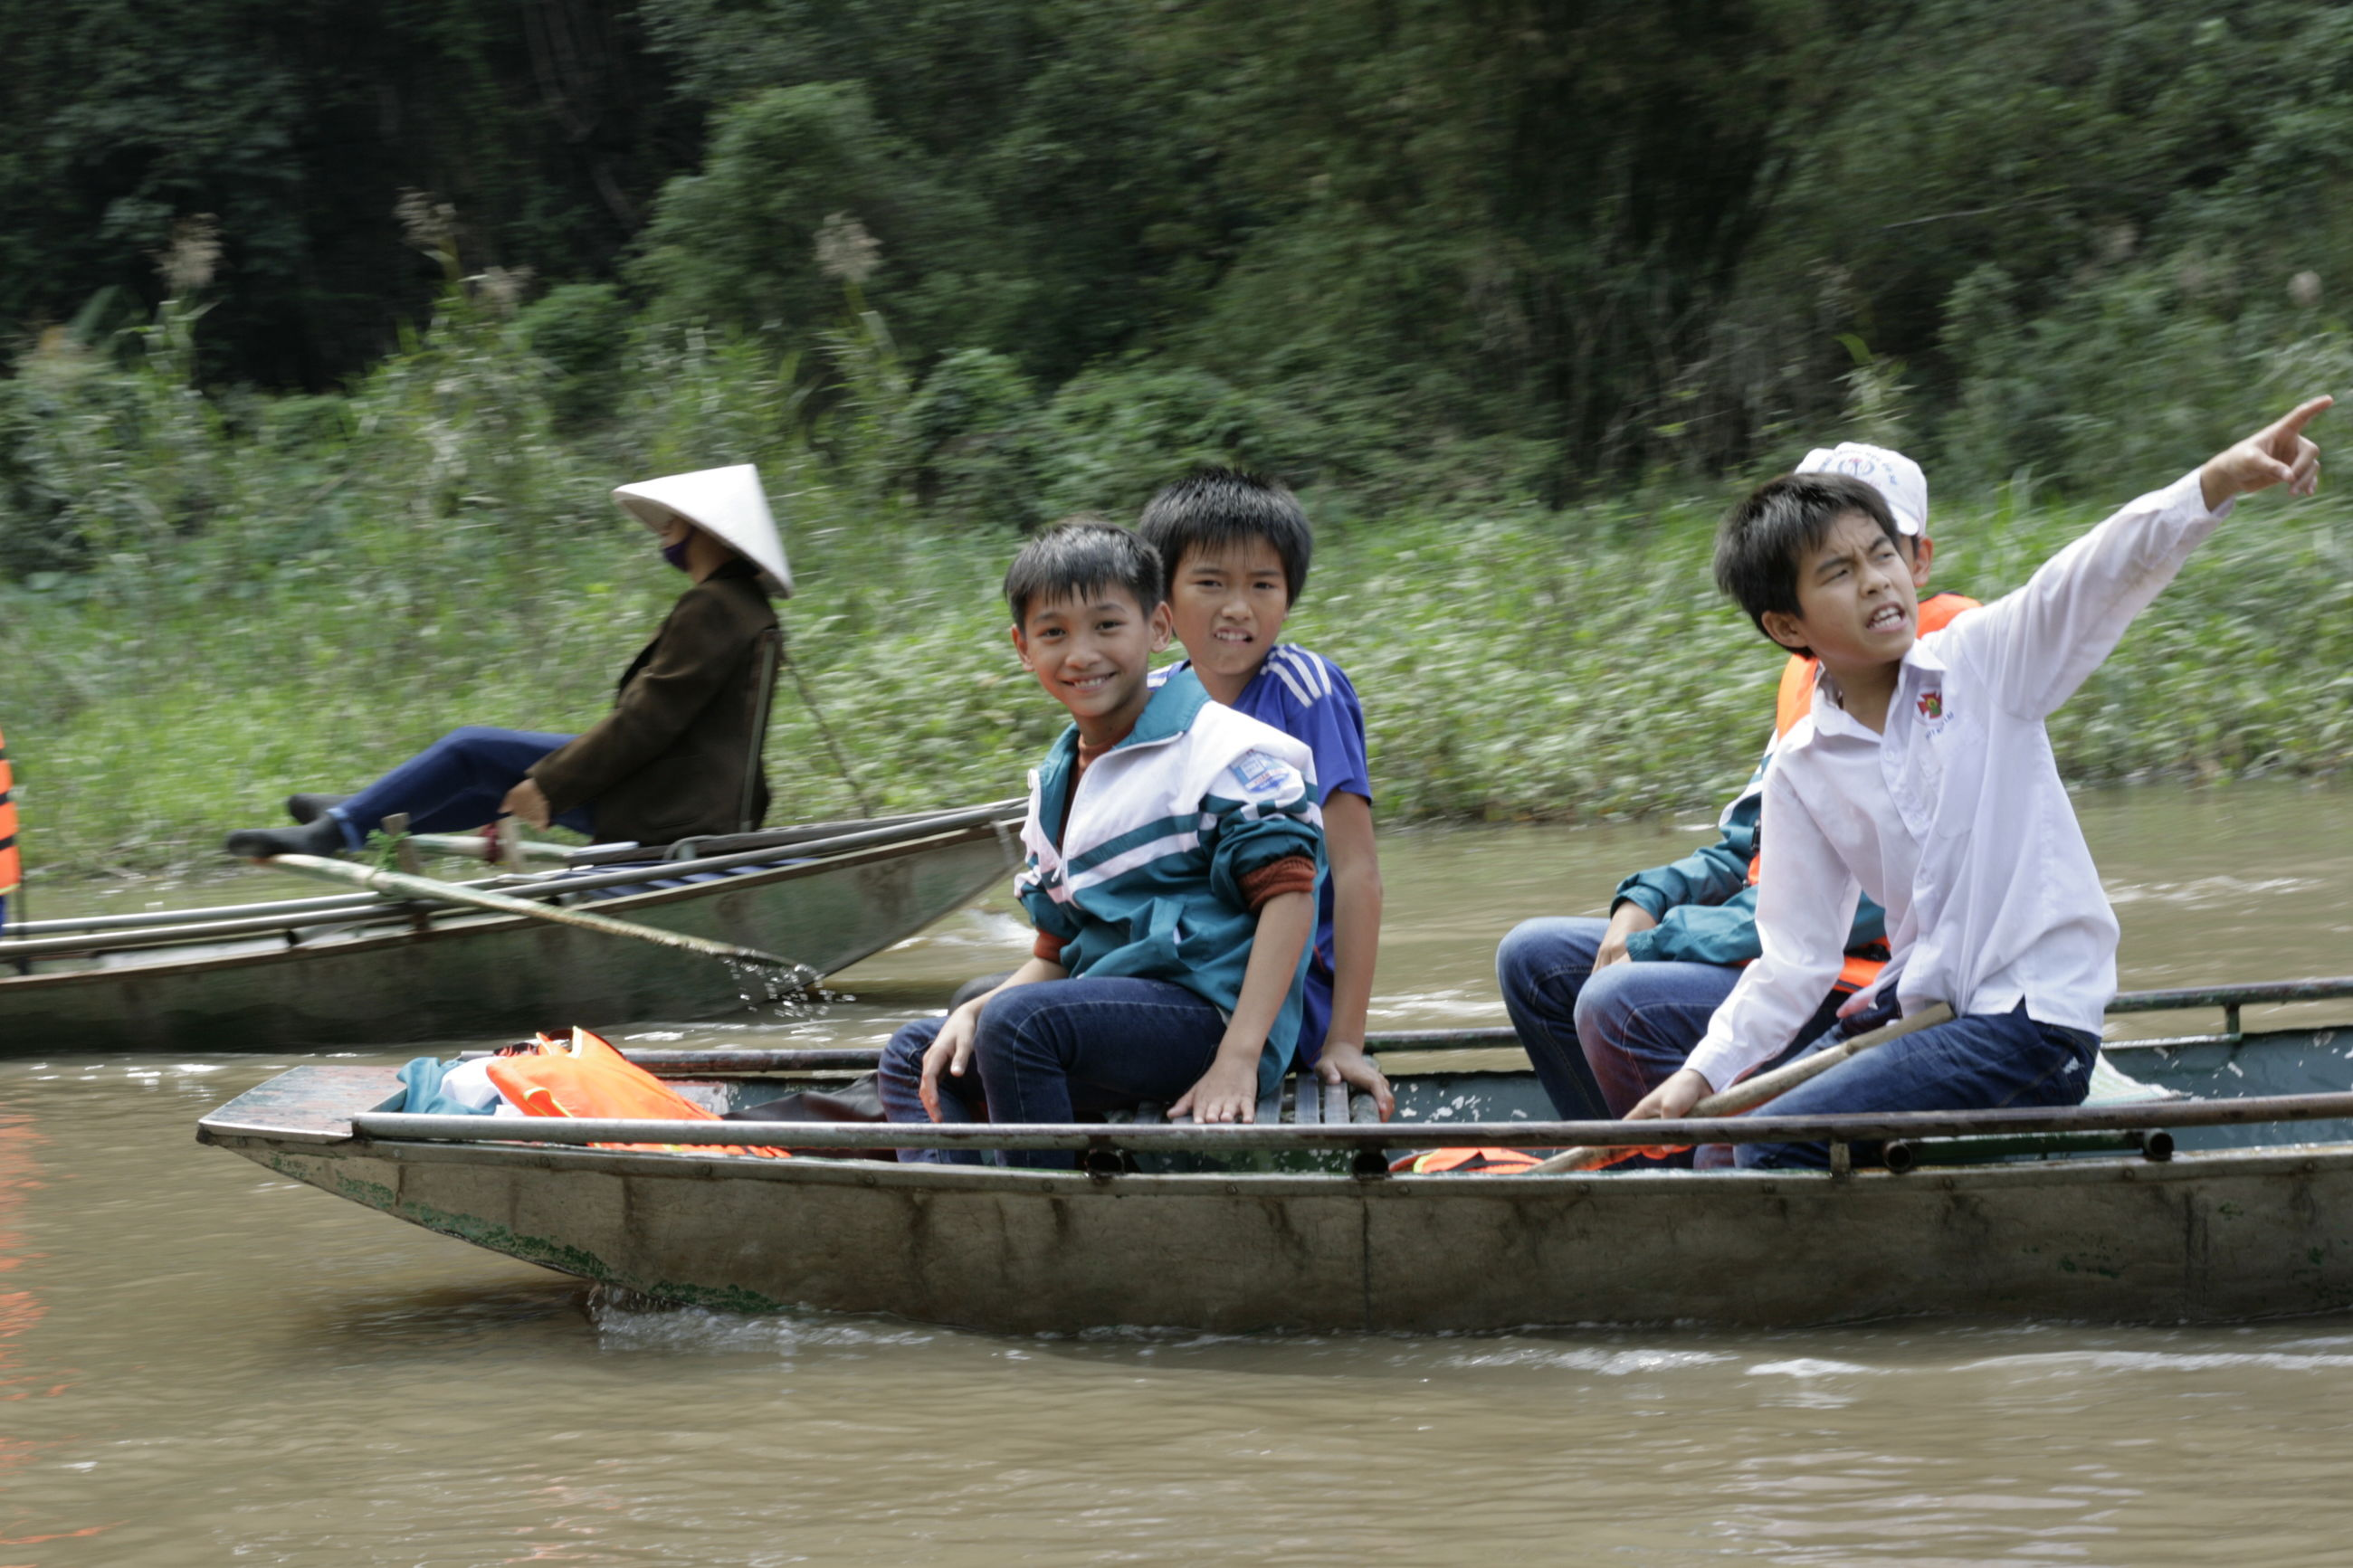 child, boys, females, leisure activity, real people, family with two children, males, forest, water, people, brother, full length, outdoors, childhood, nature, day, adult